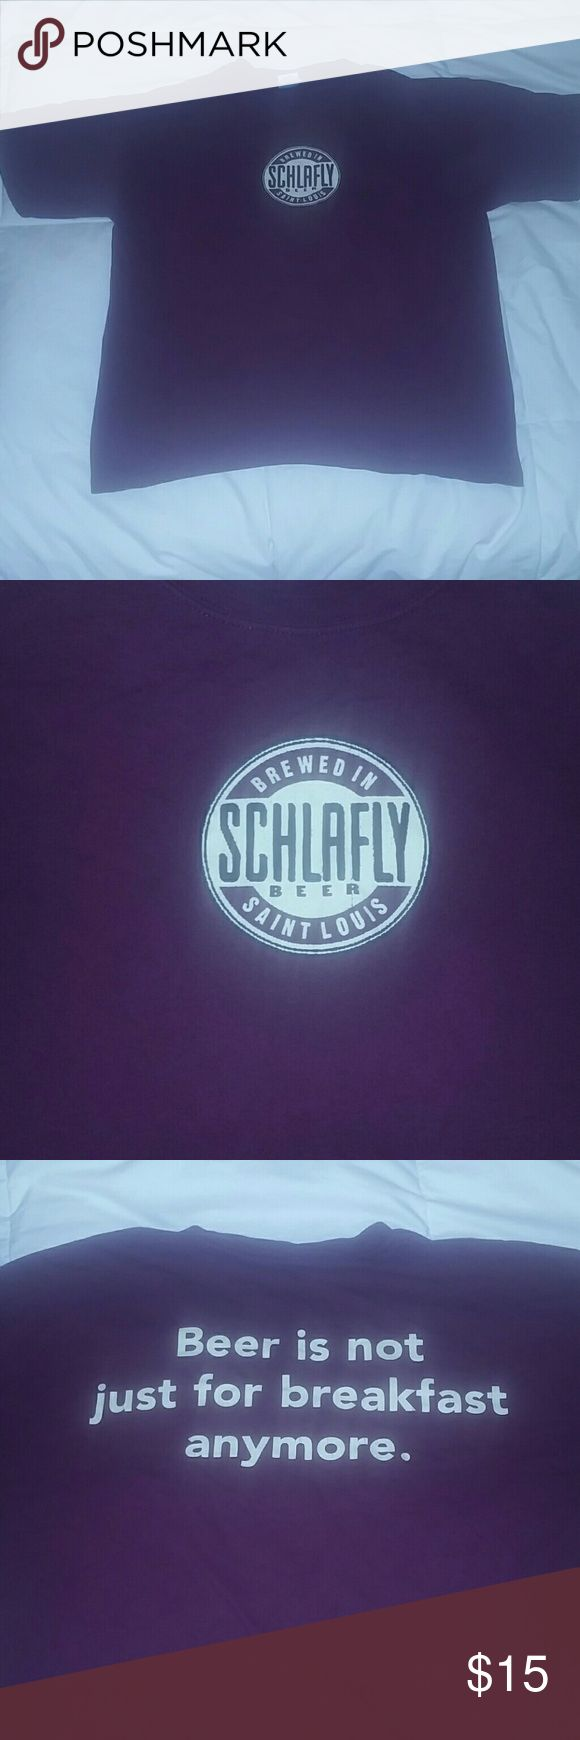 "Schlafly Beer Is Not Just For Breakfast Anymore L Size Large Schlafly 'Beer is not just for breakfast anymore."" St. Louis. Worn, no holes, no stains, 22"" x 23"" Gildan Shirts Tees - Short Sleeve"